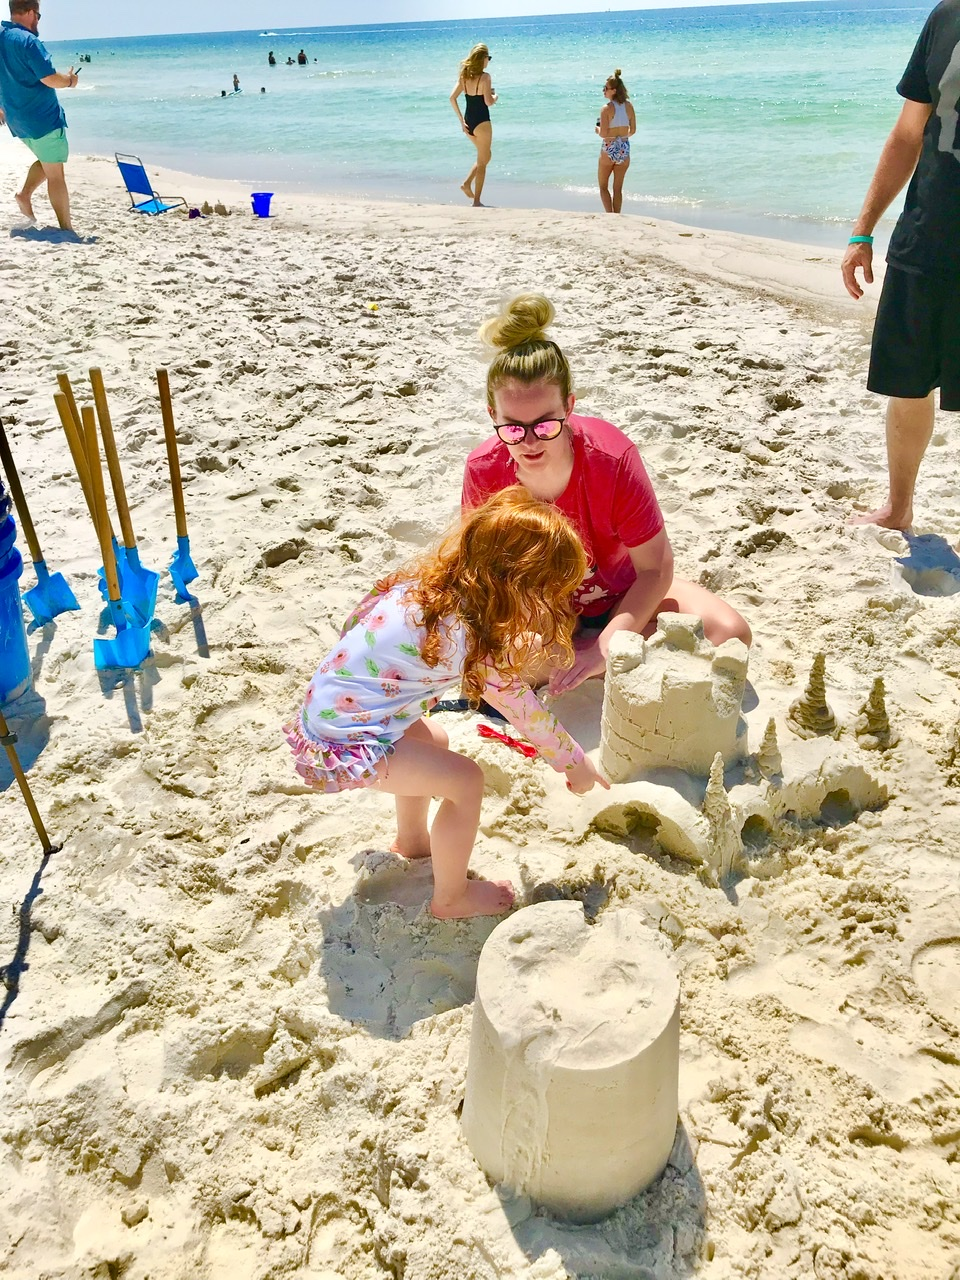 Learning to build sand castles